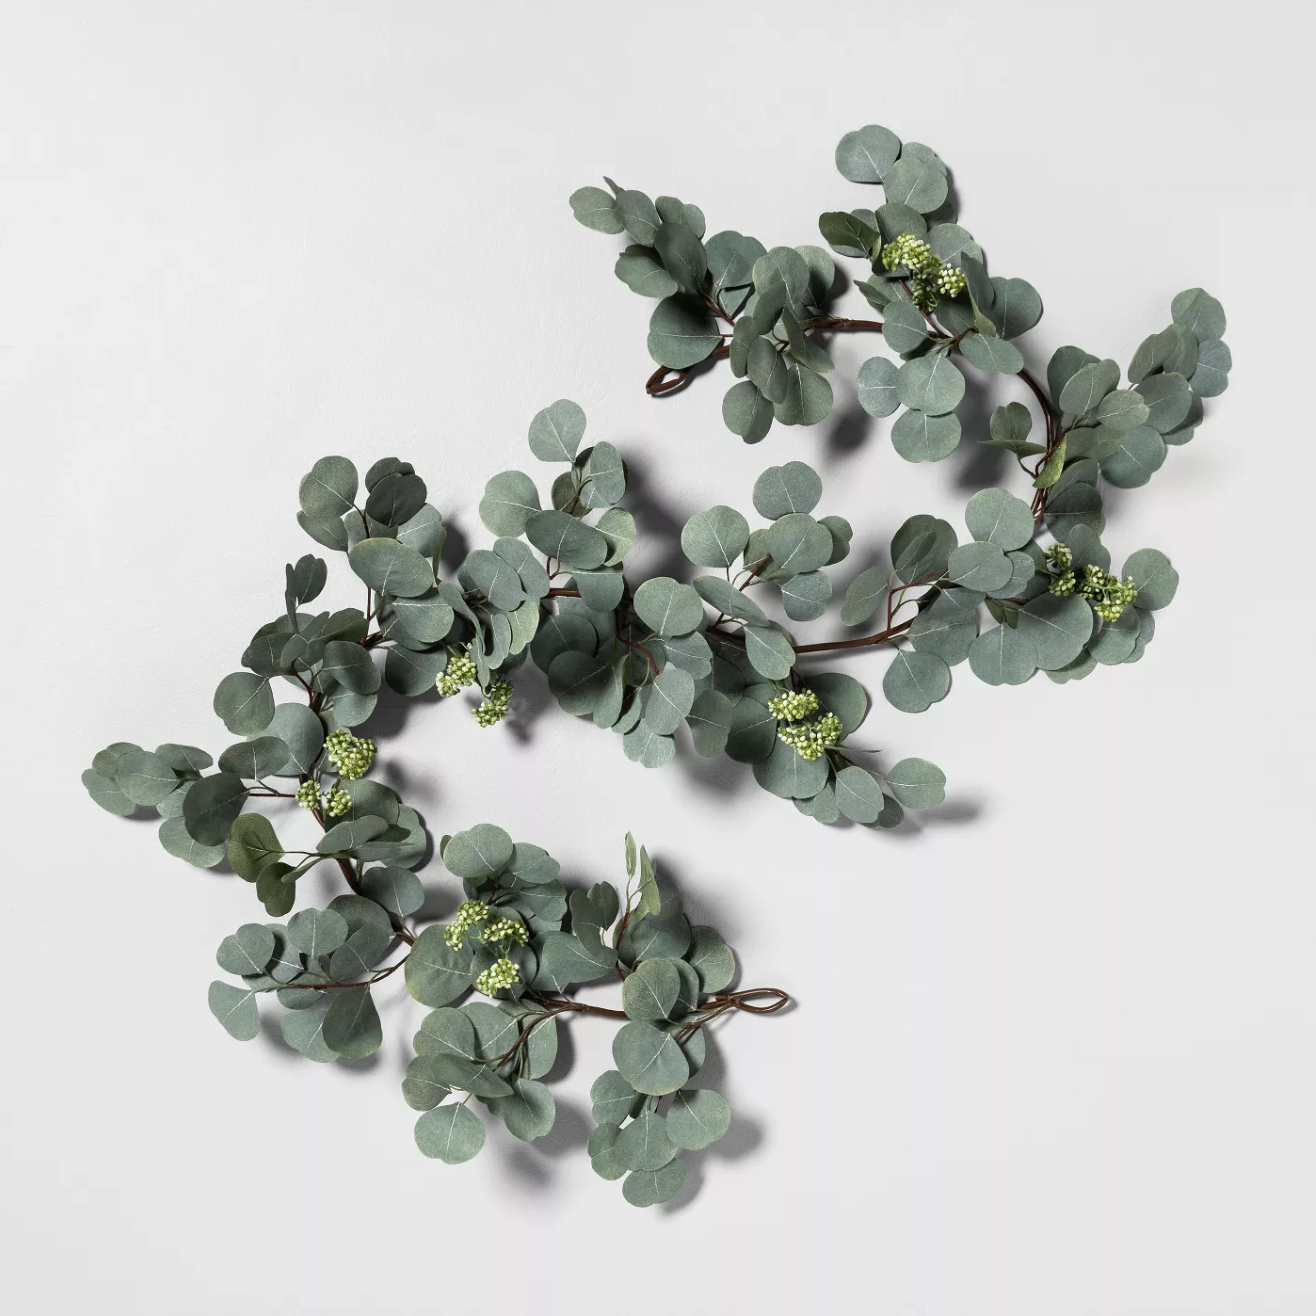 9. Eucalyptus Garland - While fall tends to focus on warmer colors, keeping hints of greenery around helps make your space feel bright and alive. Eucalyptus is an evergreen so it's also perfect for transitioning from summer to fall, and again from fall to winter.